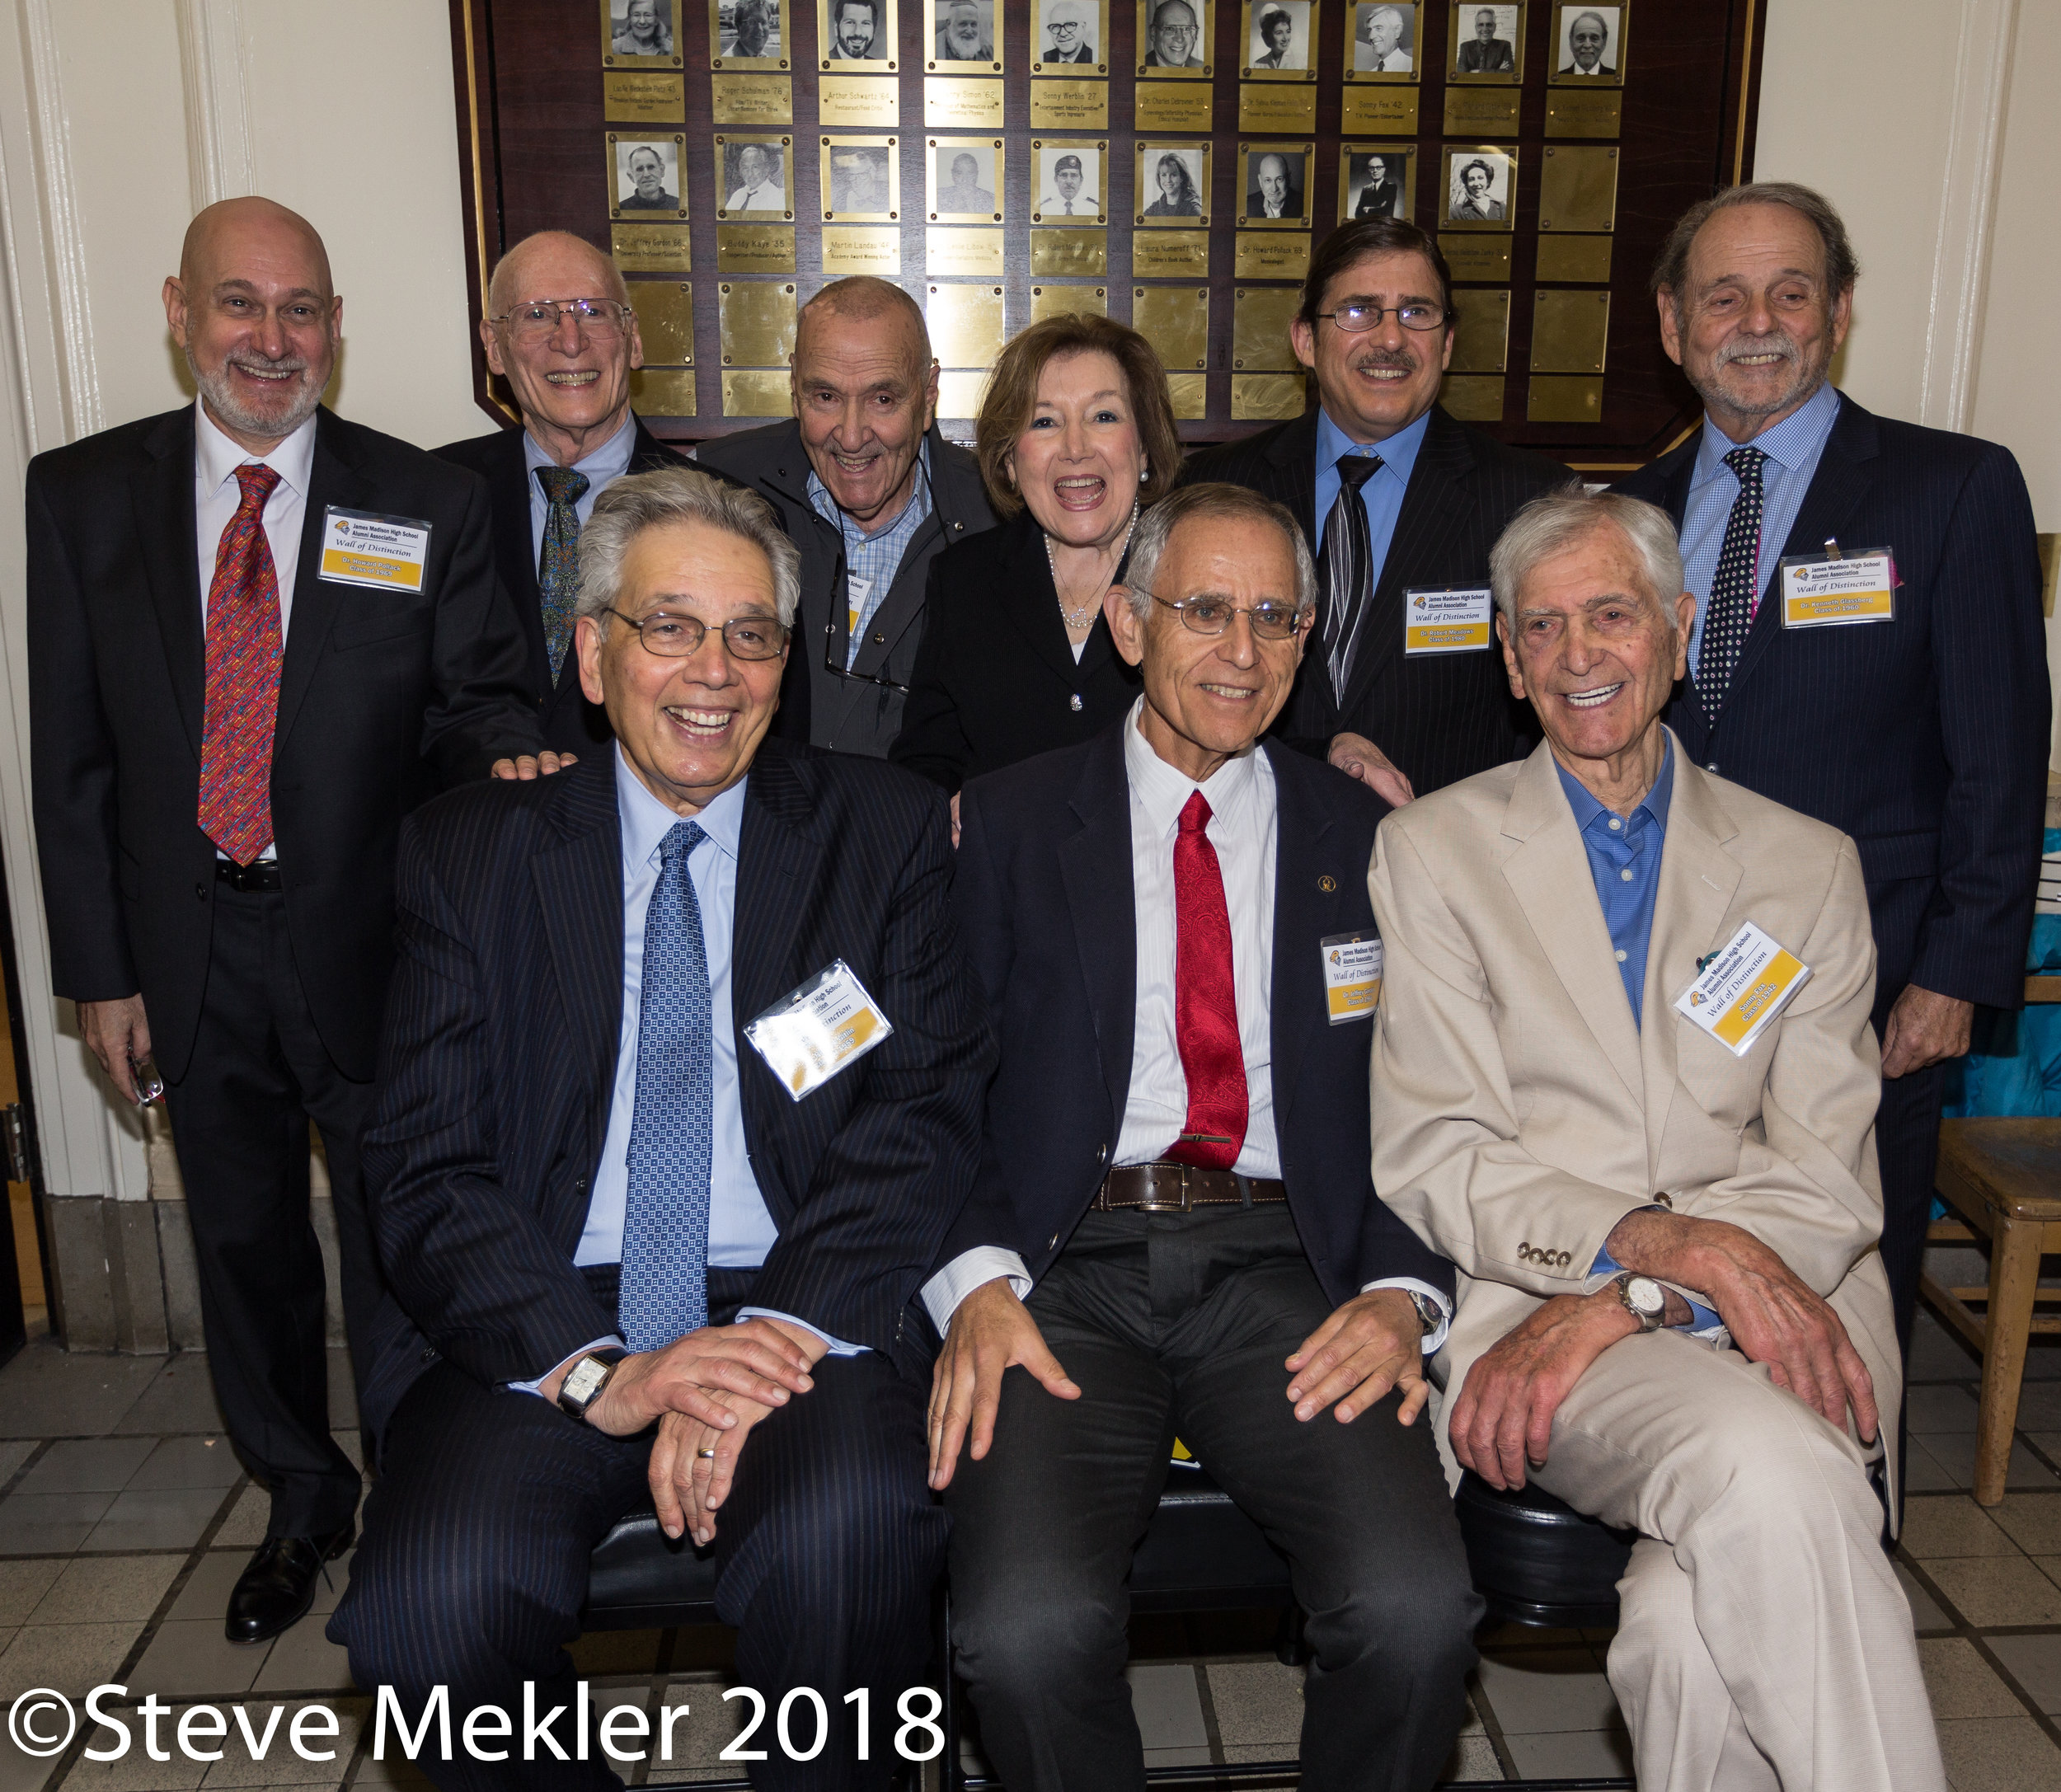 2018 Honorees    Front: Richard Gitlin, Jeffrey Gordon, Sonny Fox Back: Howard Pollack, Chuck Debrovner, Leslie Lebow, Sylvia Kleiman Fields, Robert Meadows, Kenneth Glassberg